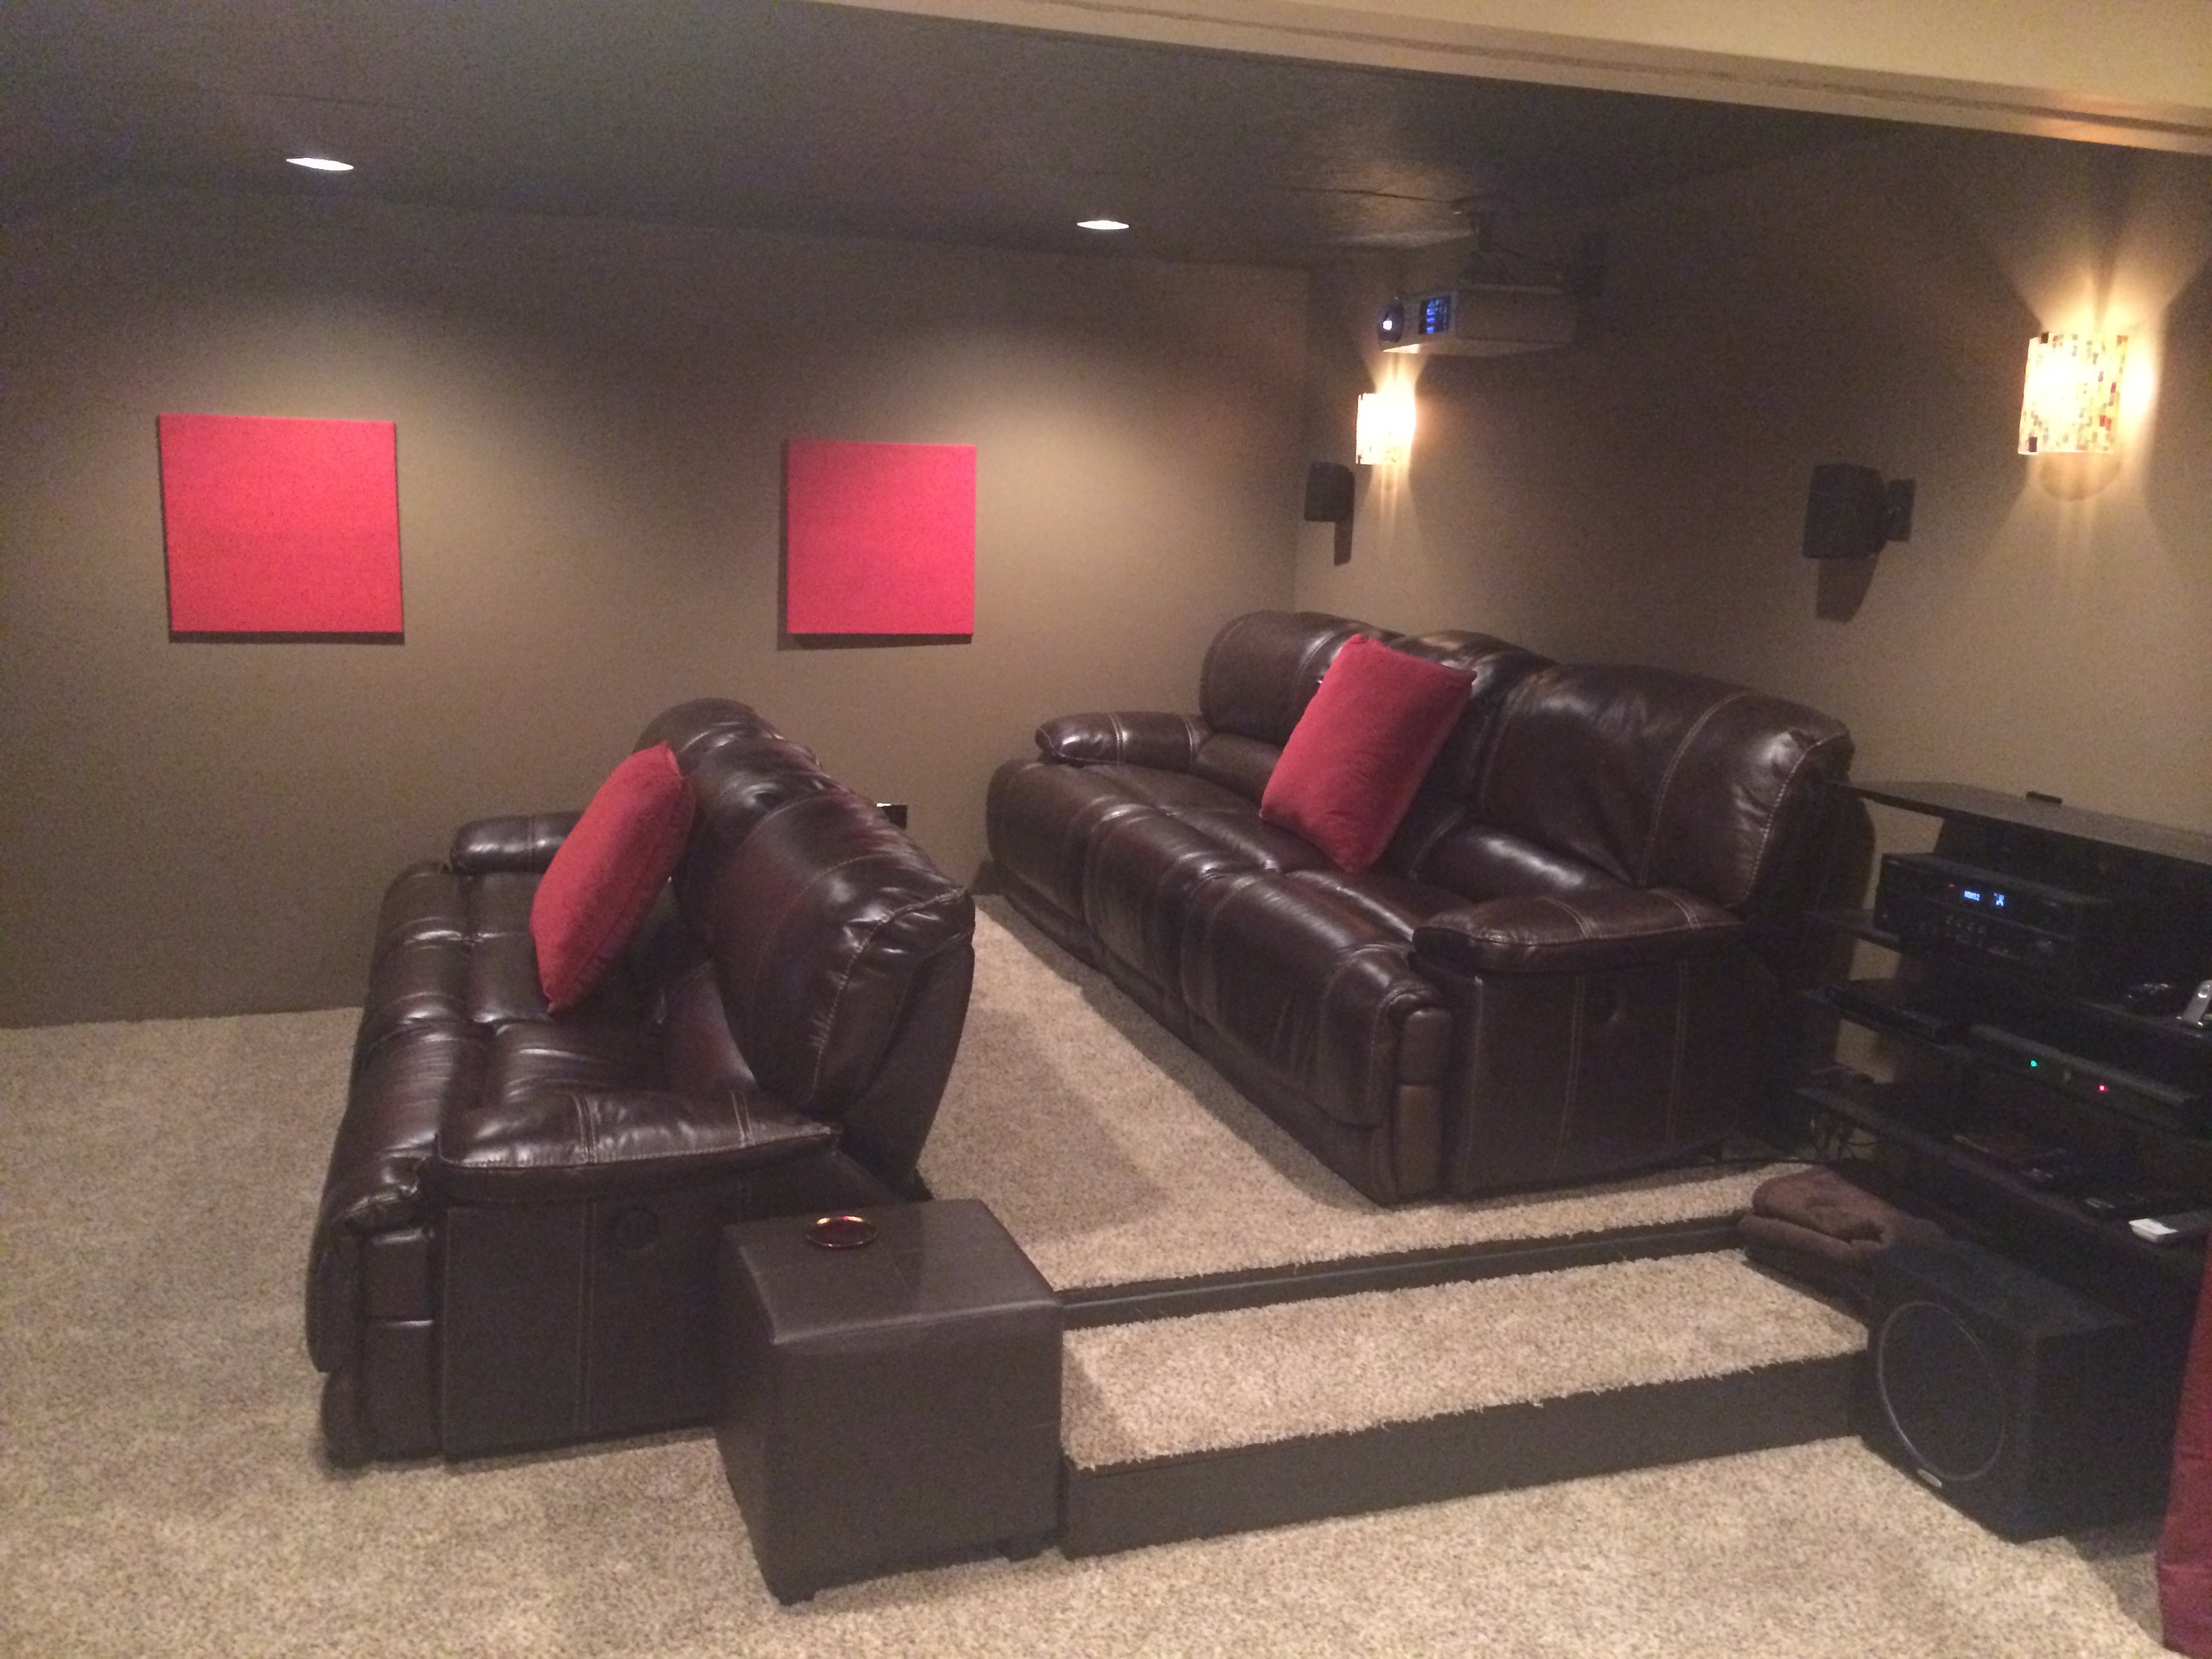 Finished My Basement u0026 Home Theater - AVS Forum | Home Theater Discussions And Reviews : st malo sectional - Sectionals, Sofas & Couches